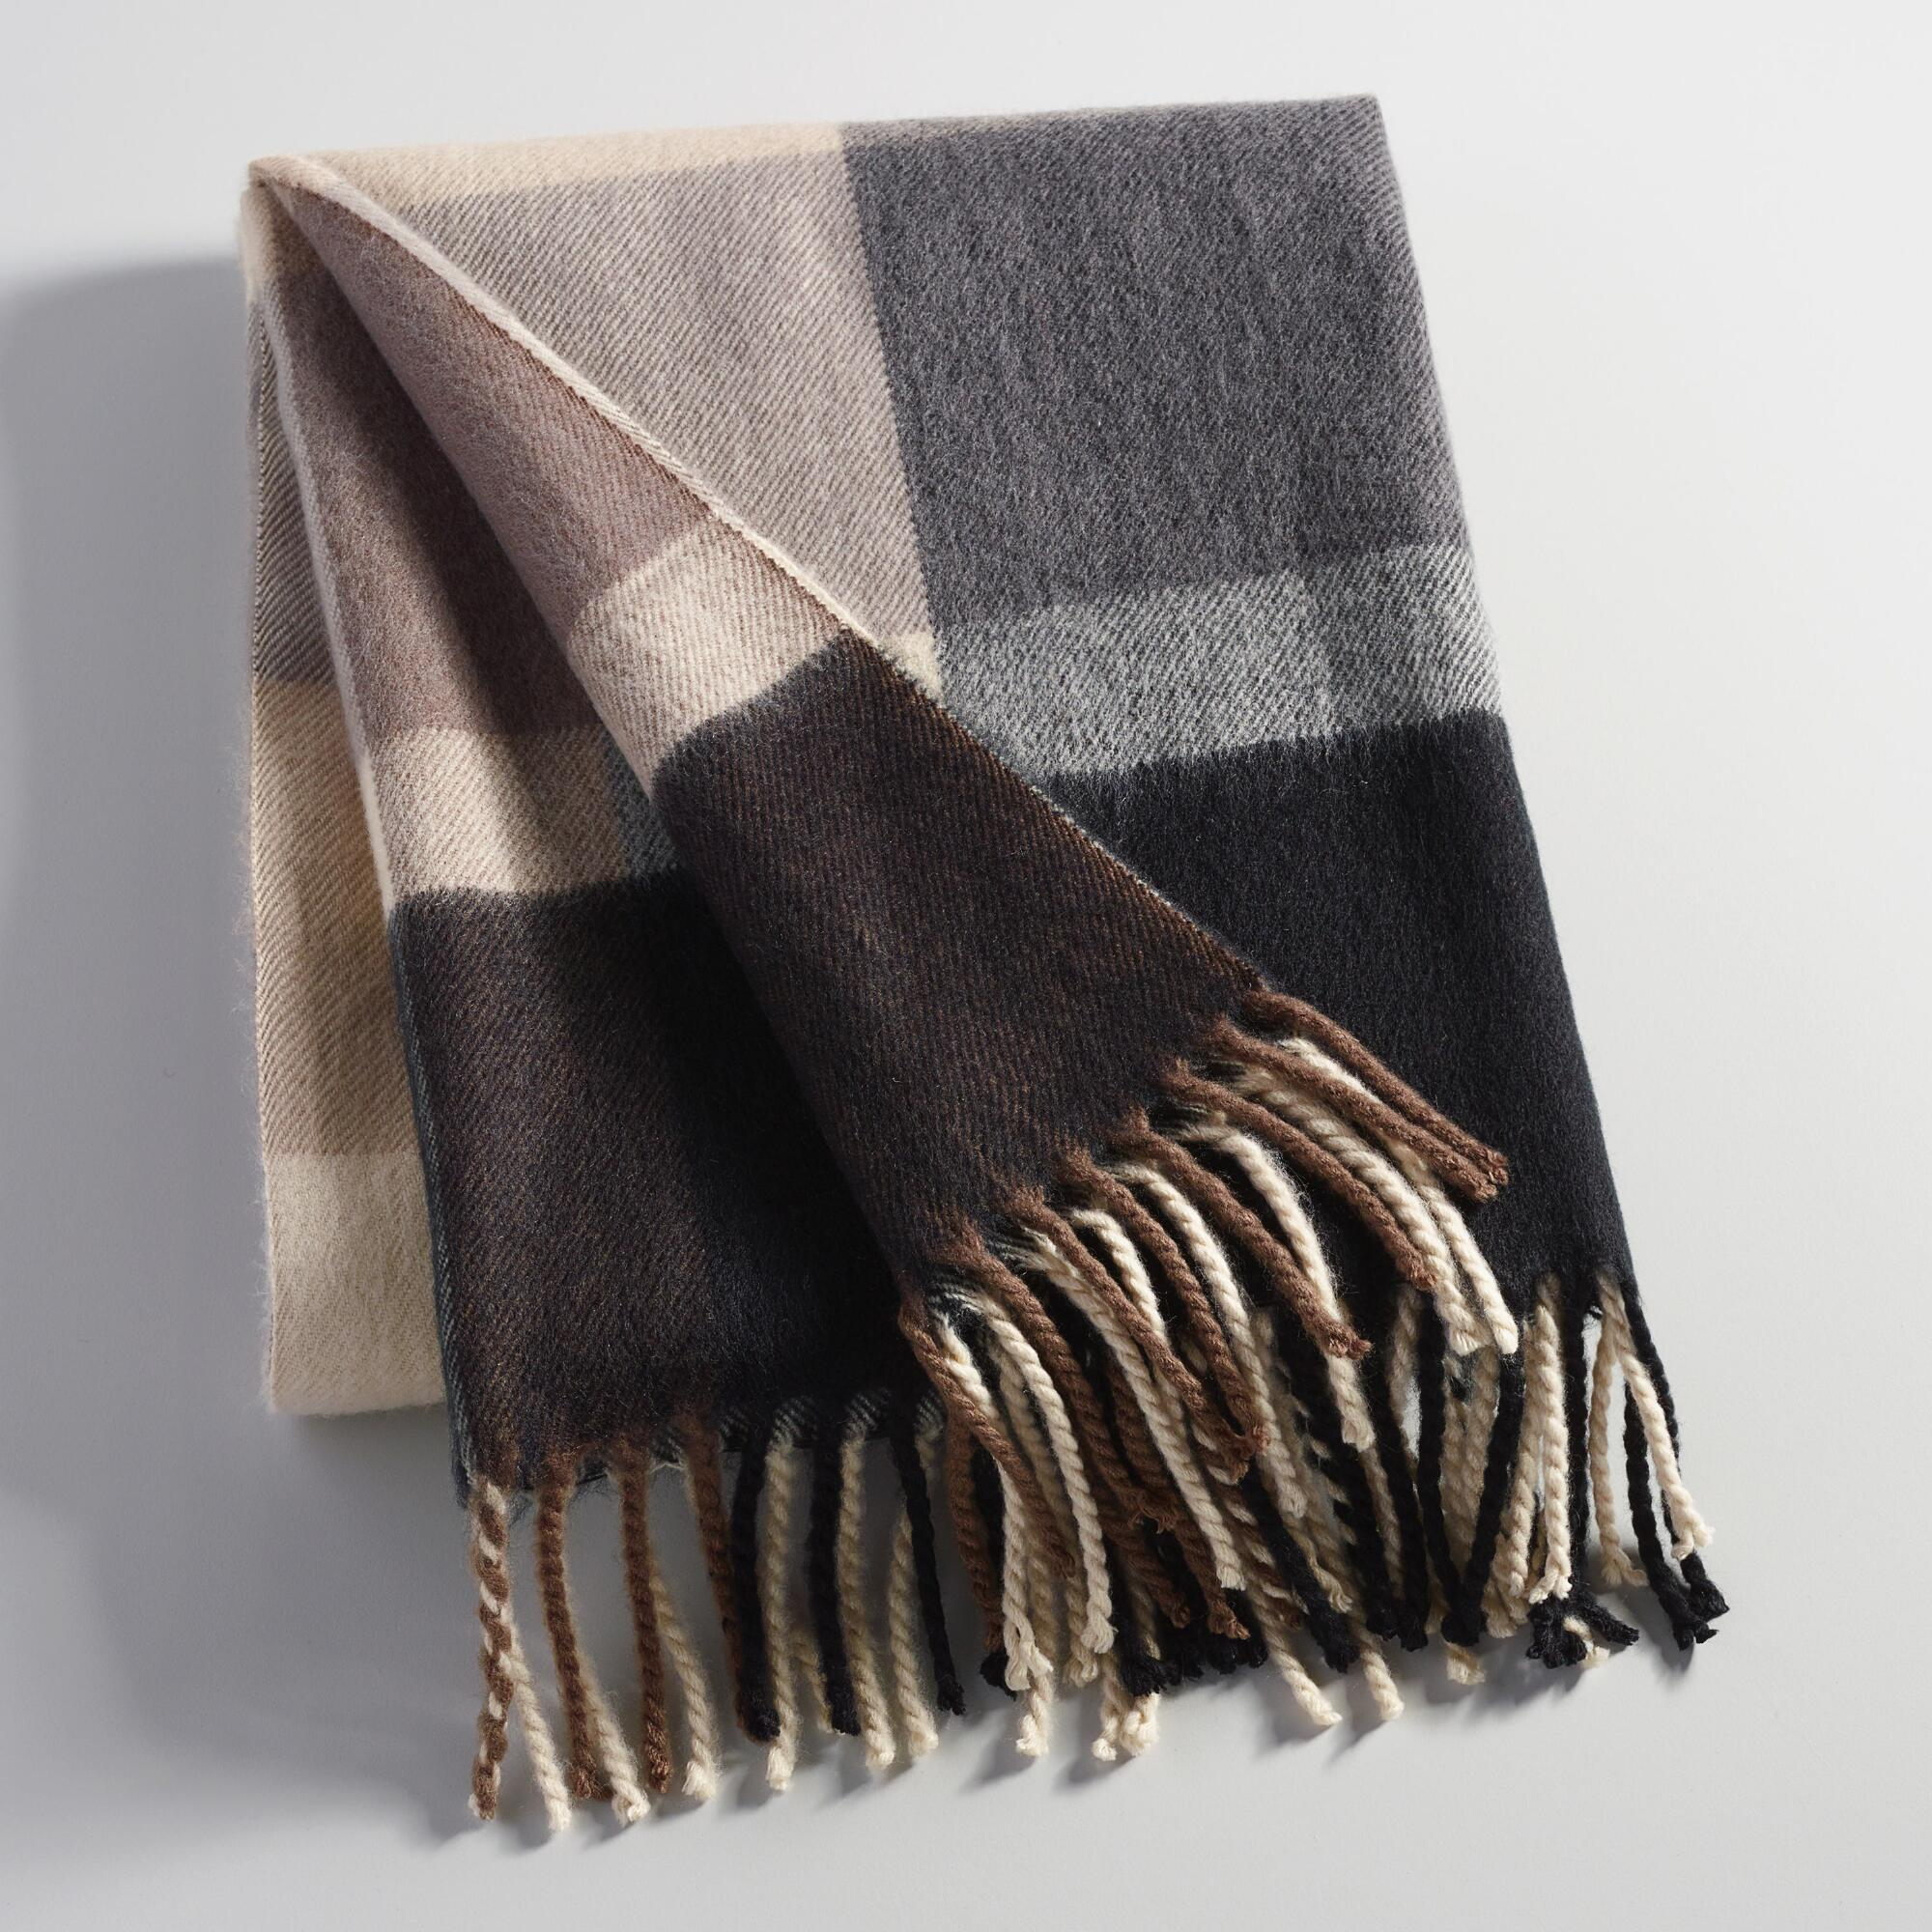 Black and Gray Plaid Throw Blanket - Acrylic by World Market